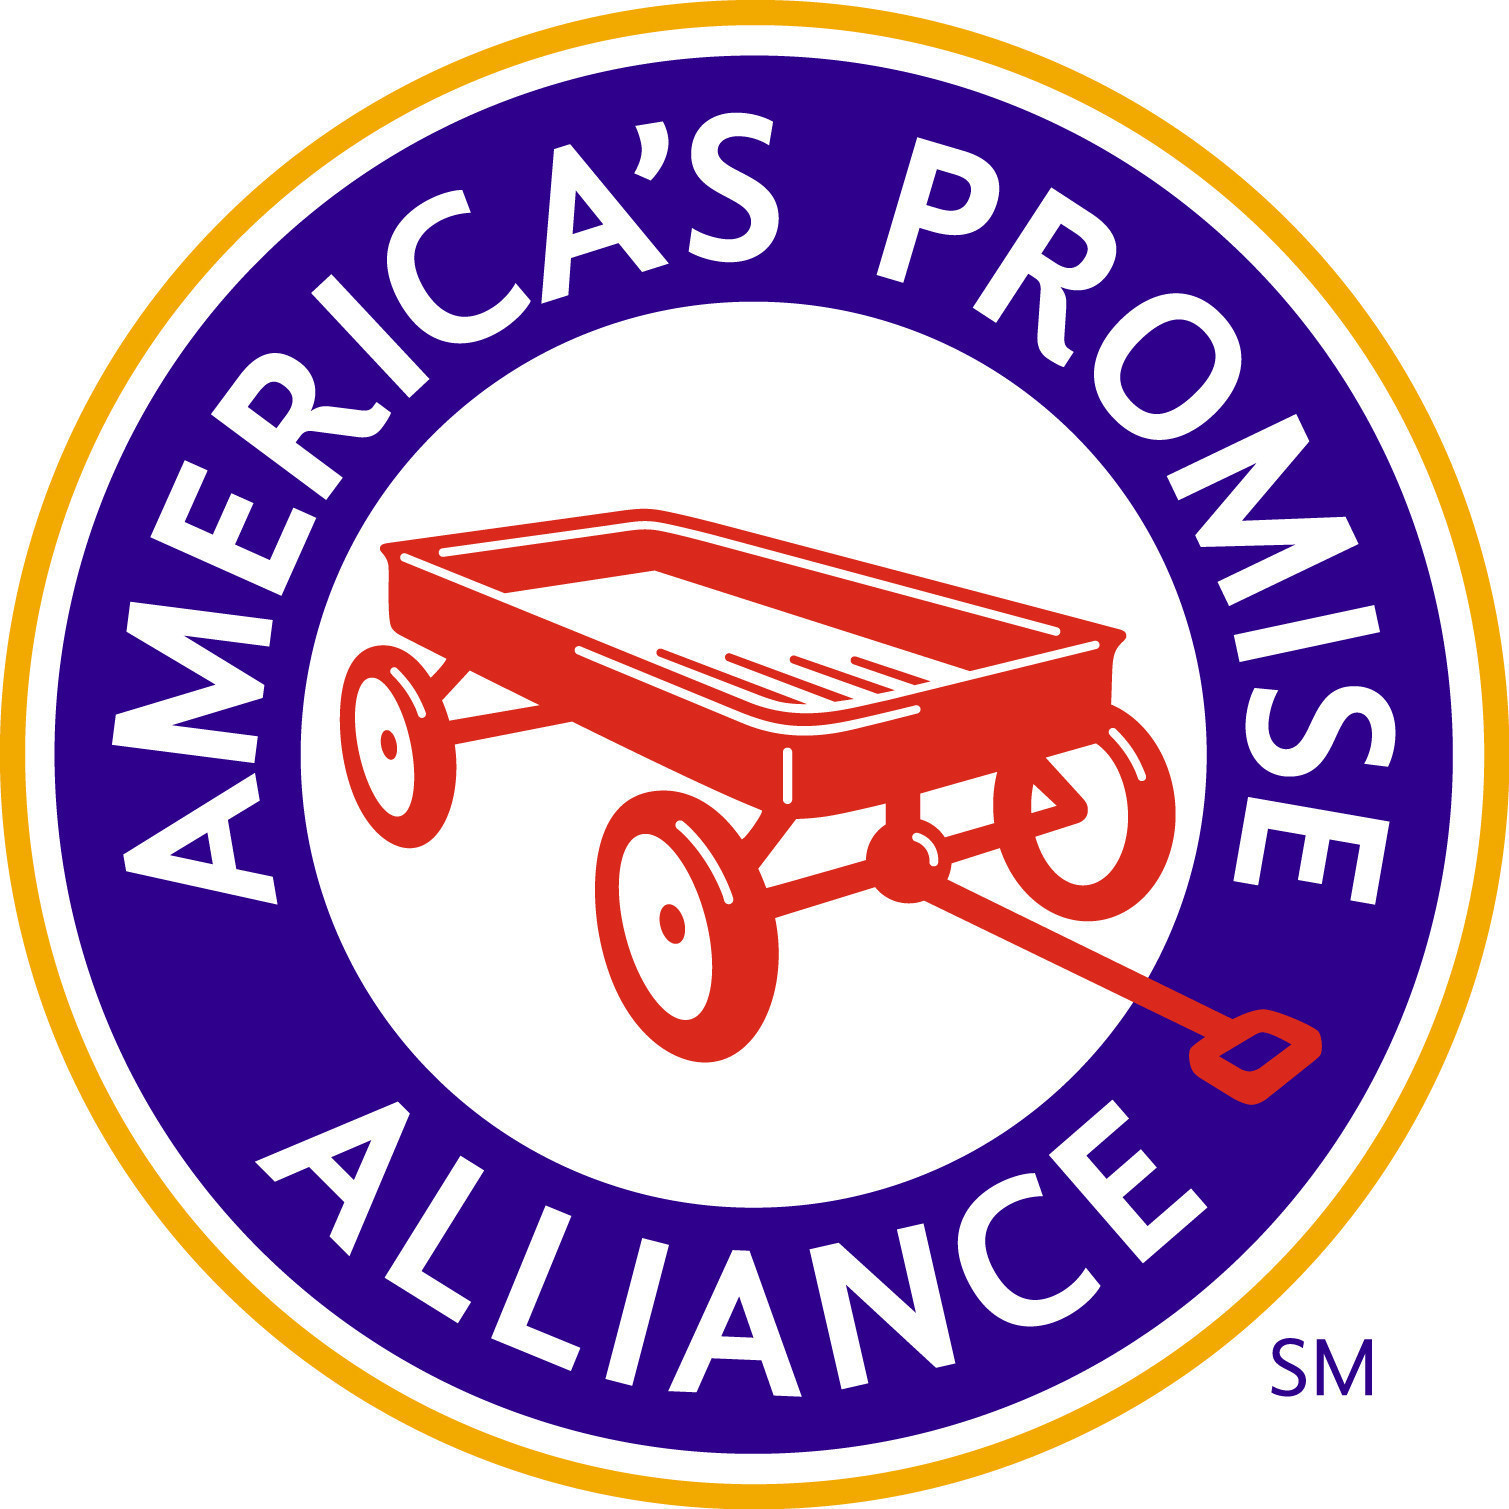 America S Promise Alliance Expands Senior Leadership Adds Dennis Vega As Chief Operating Officer